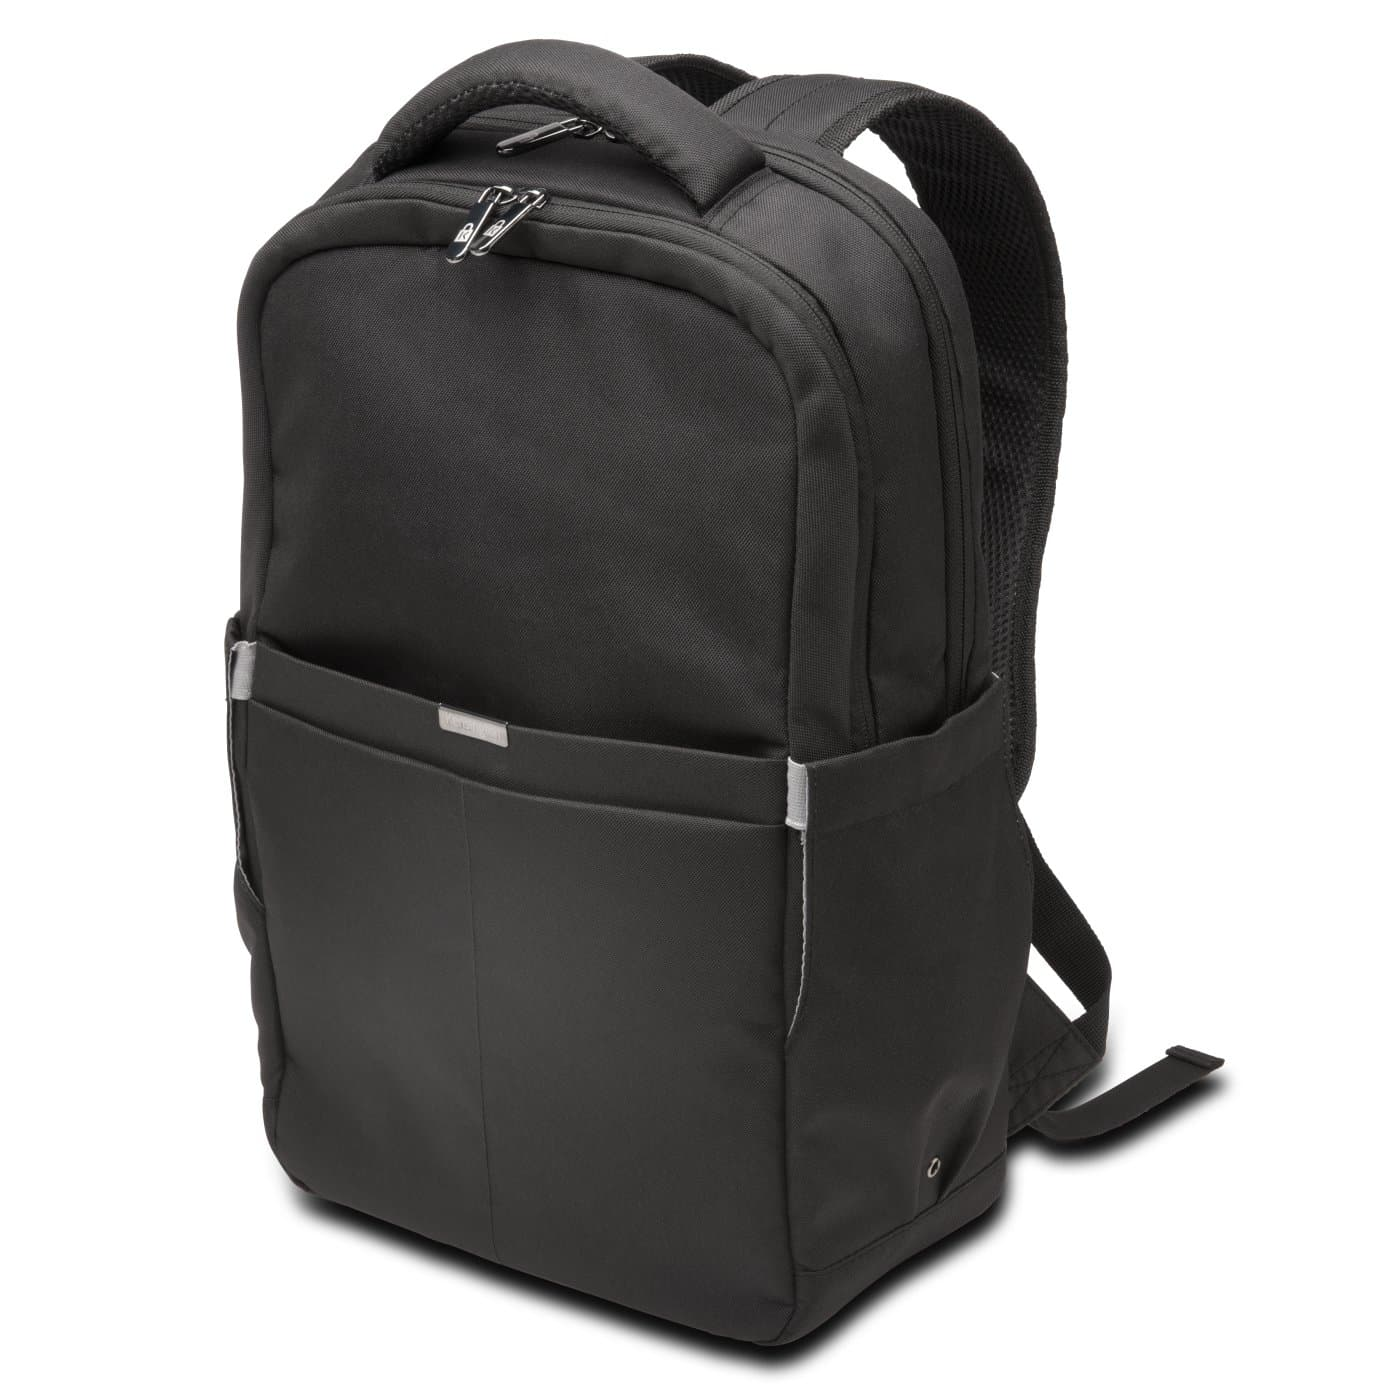 Kensington - Products - Laptop Carry Cases - LS150 Backpack — Black